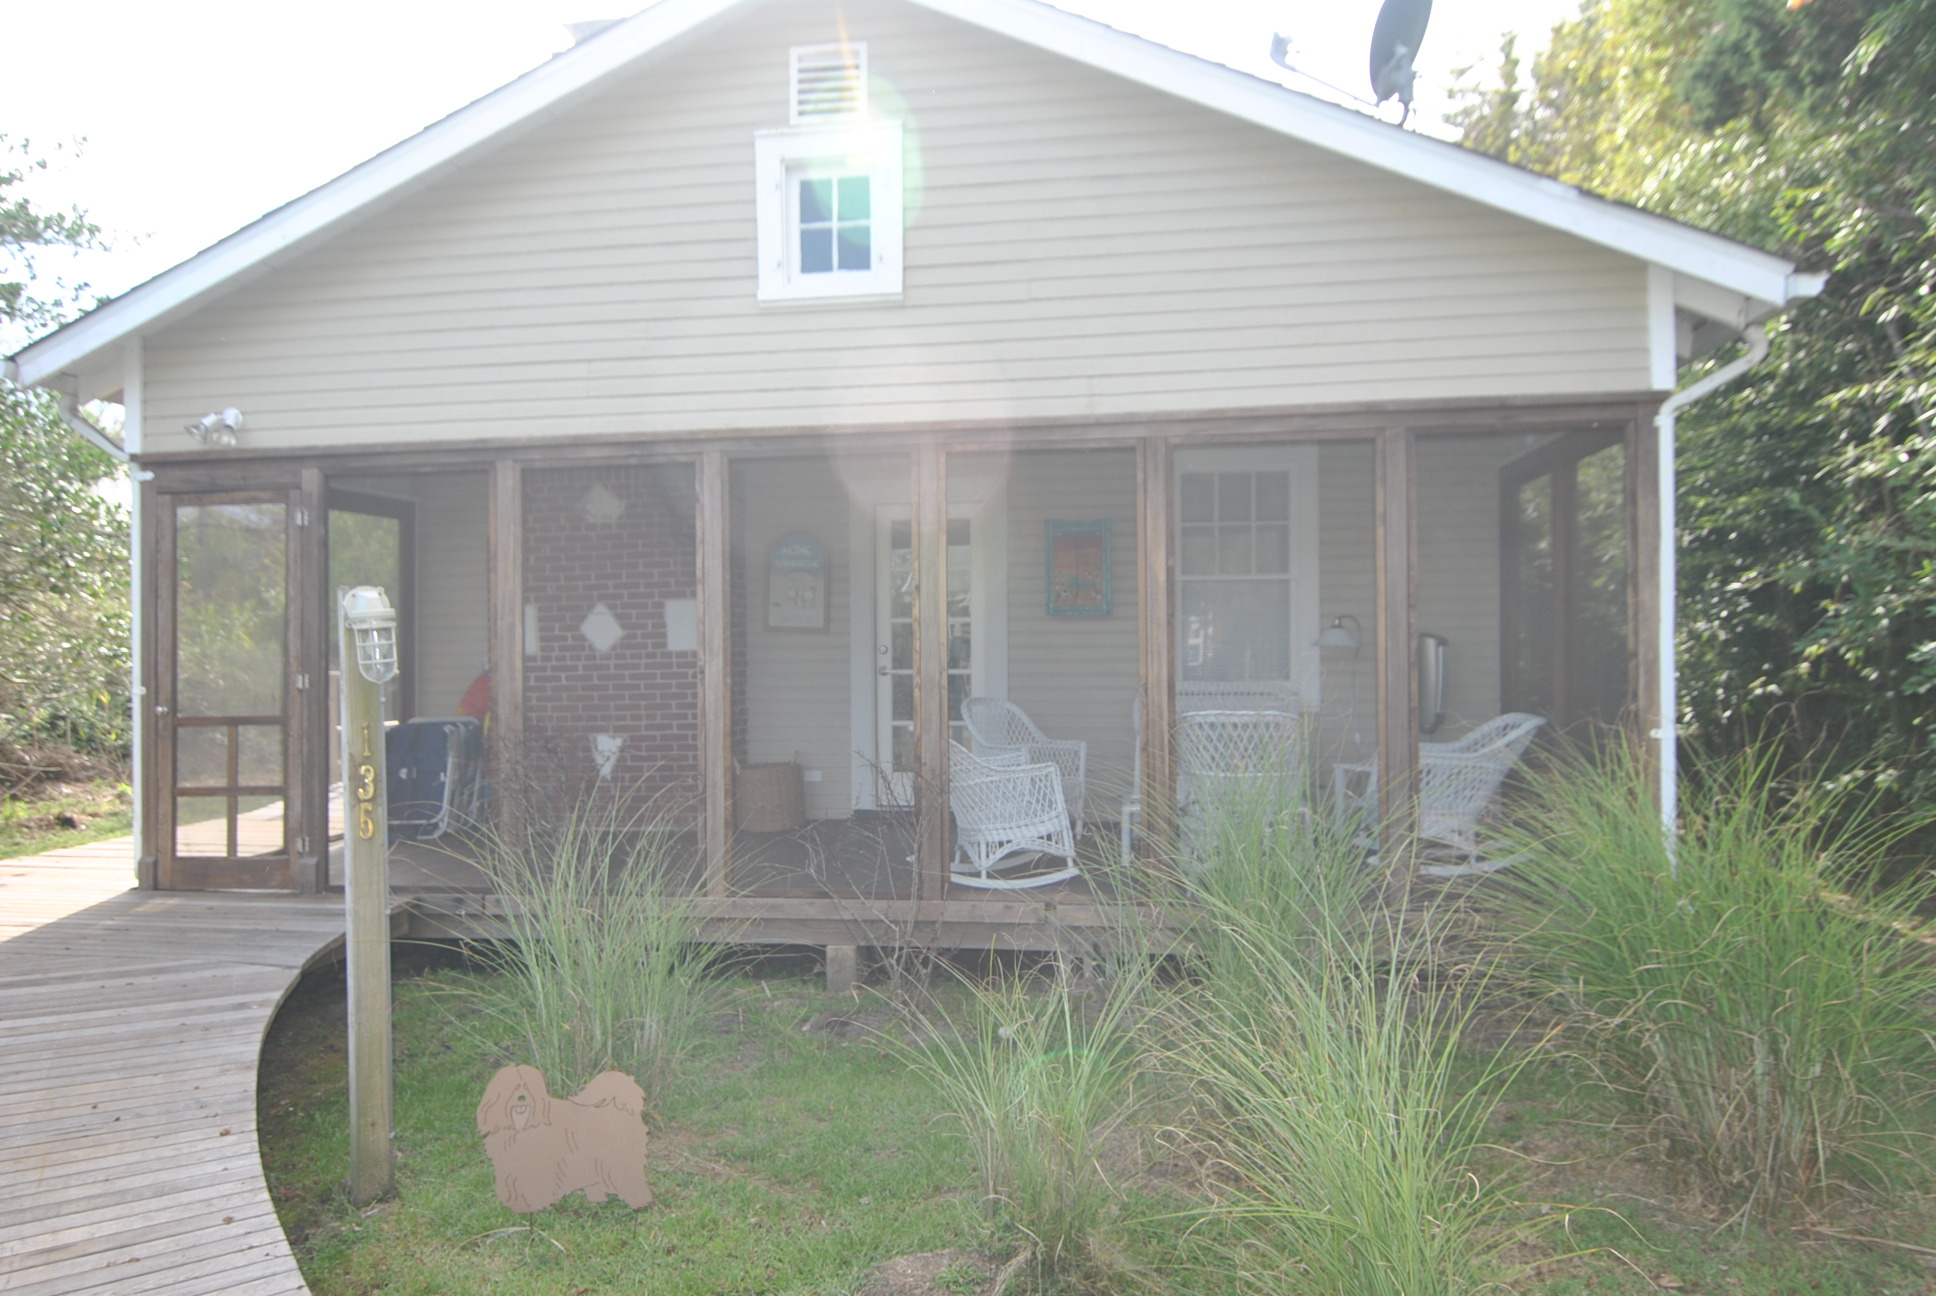 Beautifully renovated 3 bedroom, 2 full bath home located near town. Fully equipped. BBQ, outdoor shower, roof deck, screened in porch, and AC. Great Deal! Available for July 2018 for $15,000.